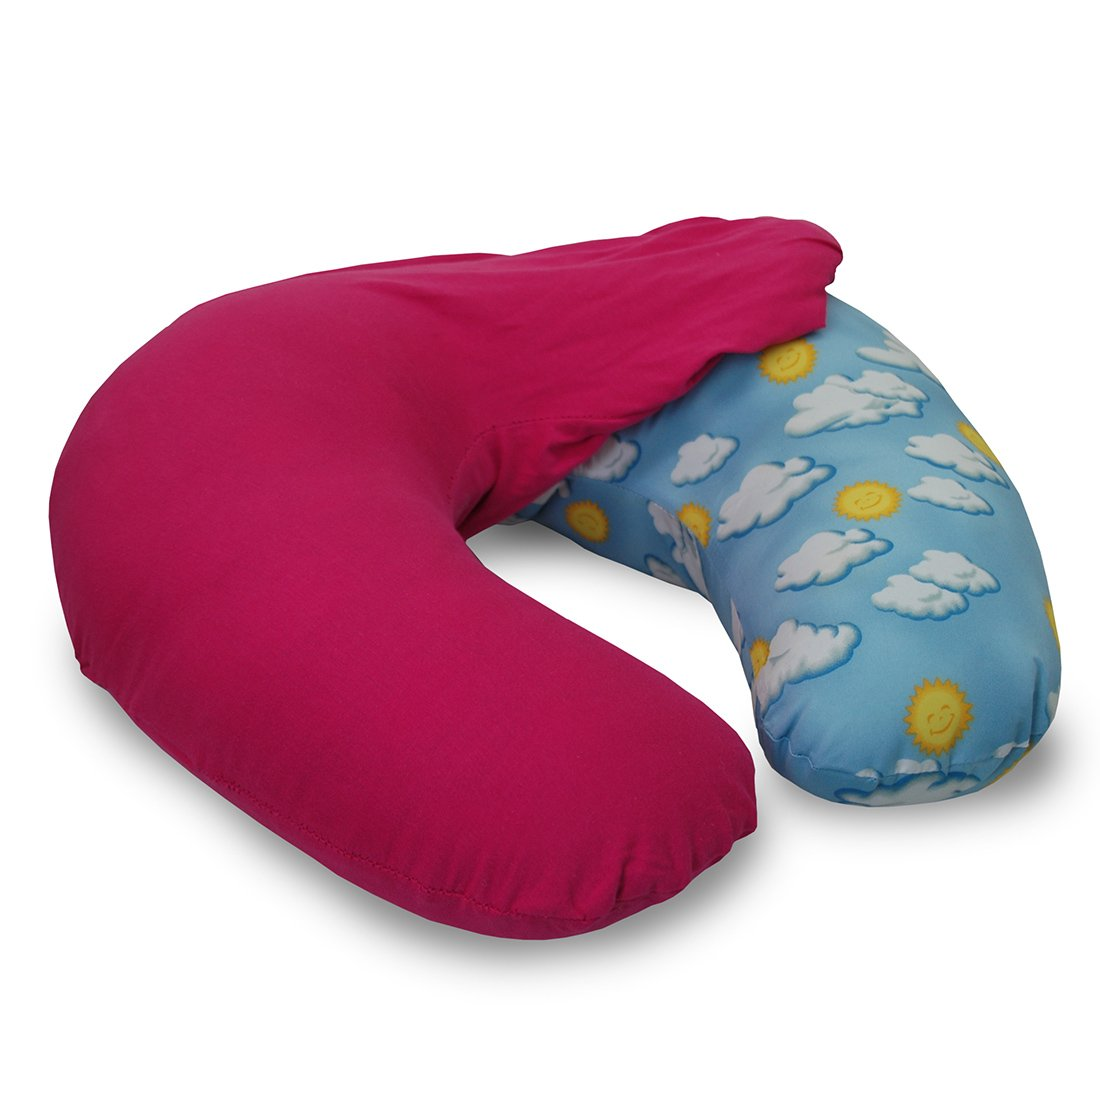 NurSit Nursing Pillow with Removable Pink Slipcover, Cloud Print